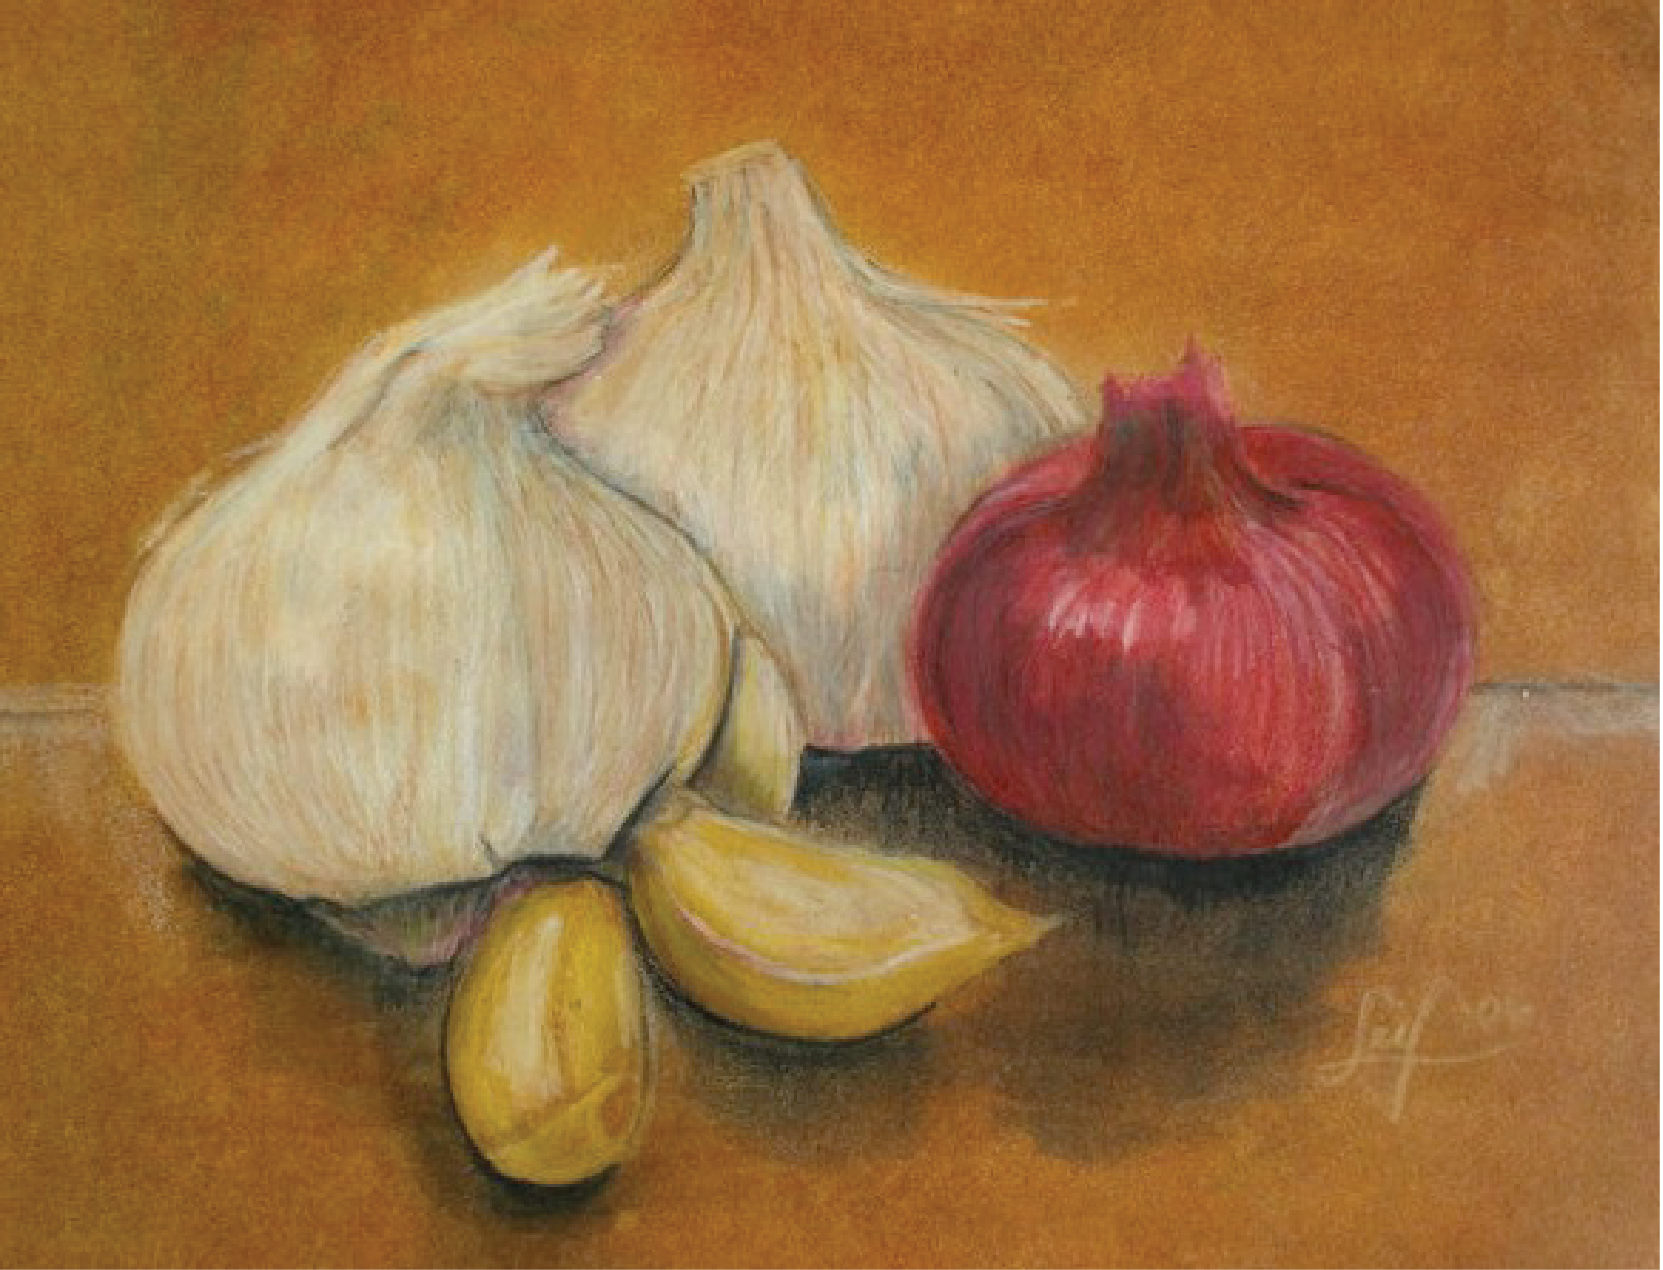 Roots (still life), mixed media: watercolor, ink, oils, and colored pencils, 2006